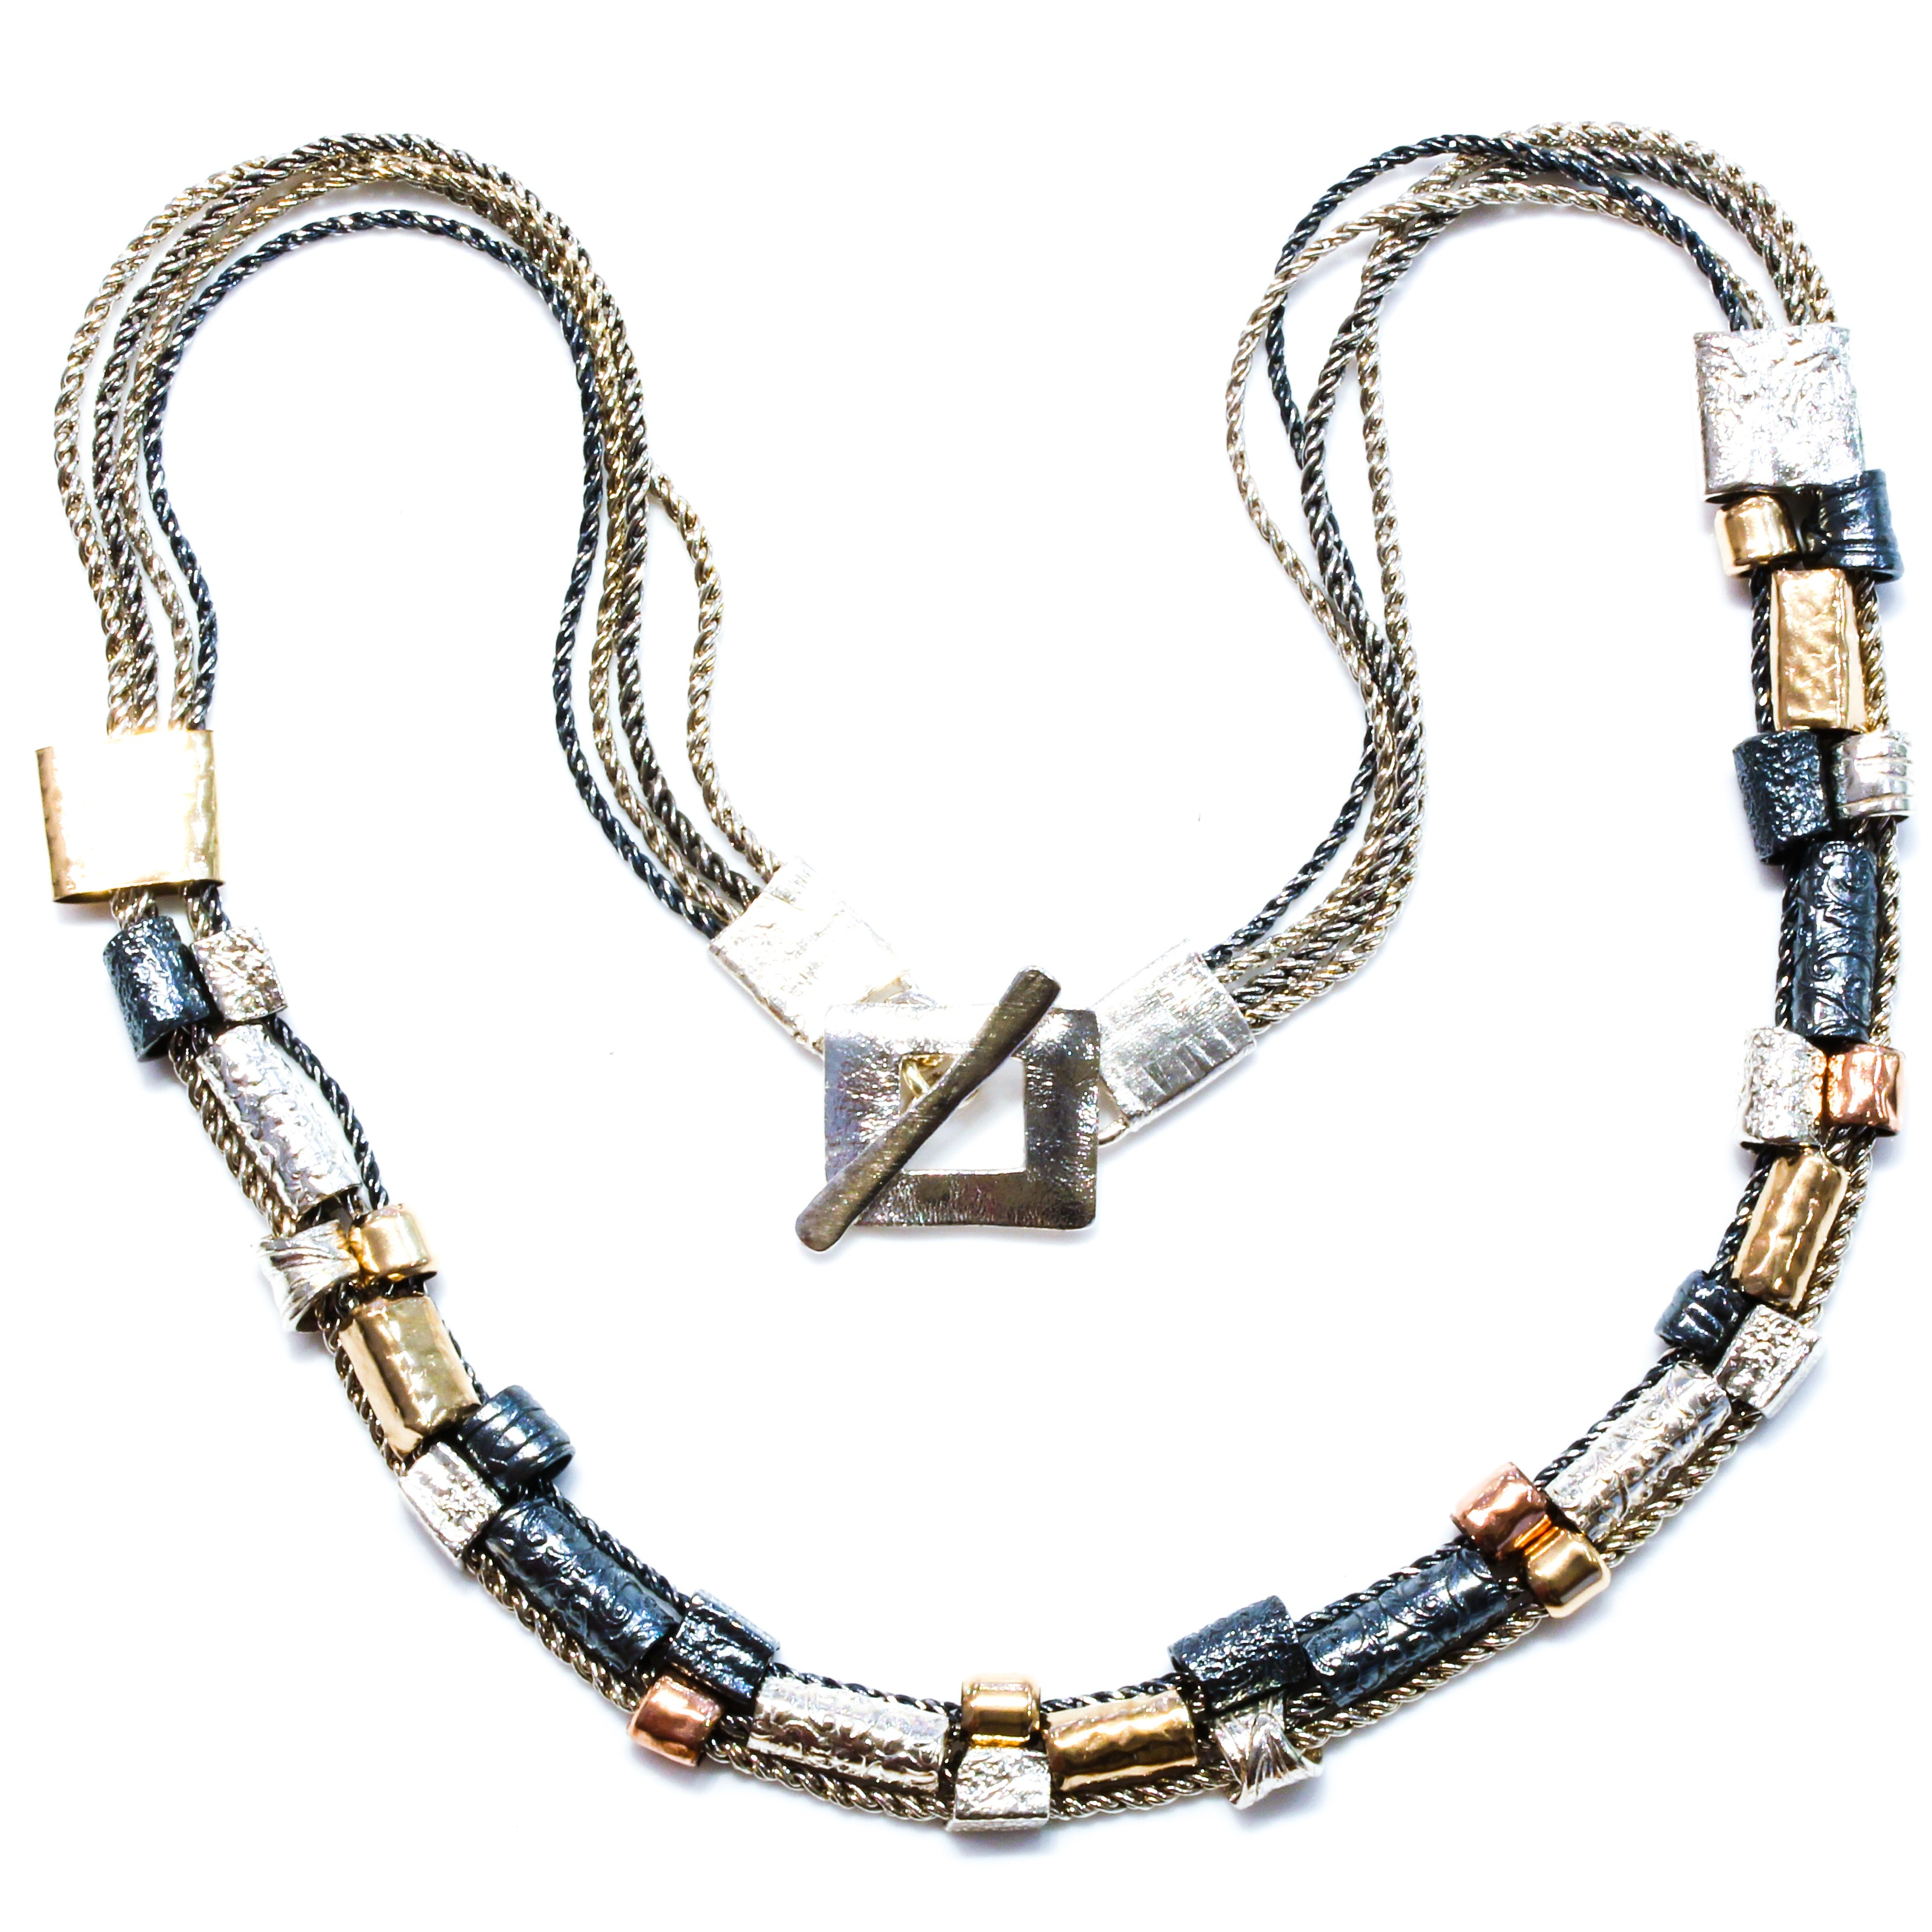 Handmade Necklace With Gold and Silver